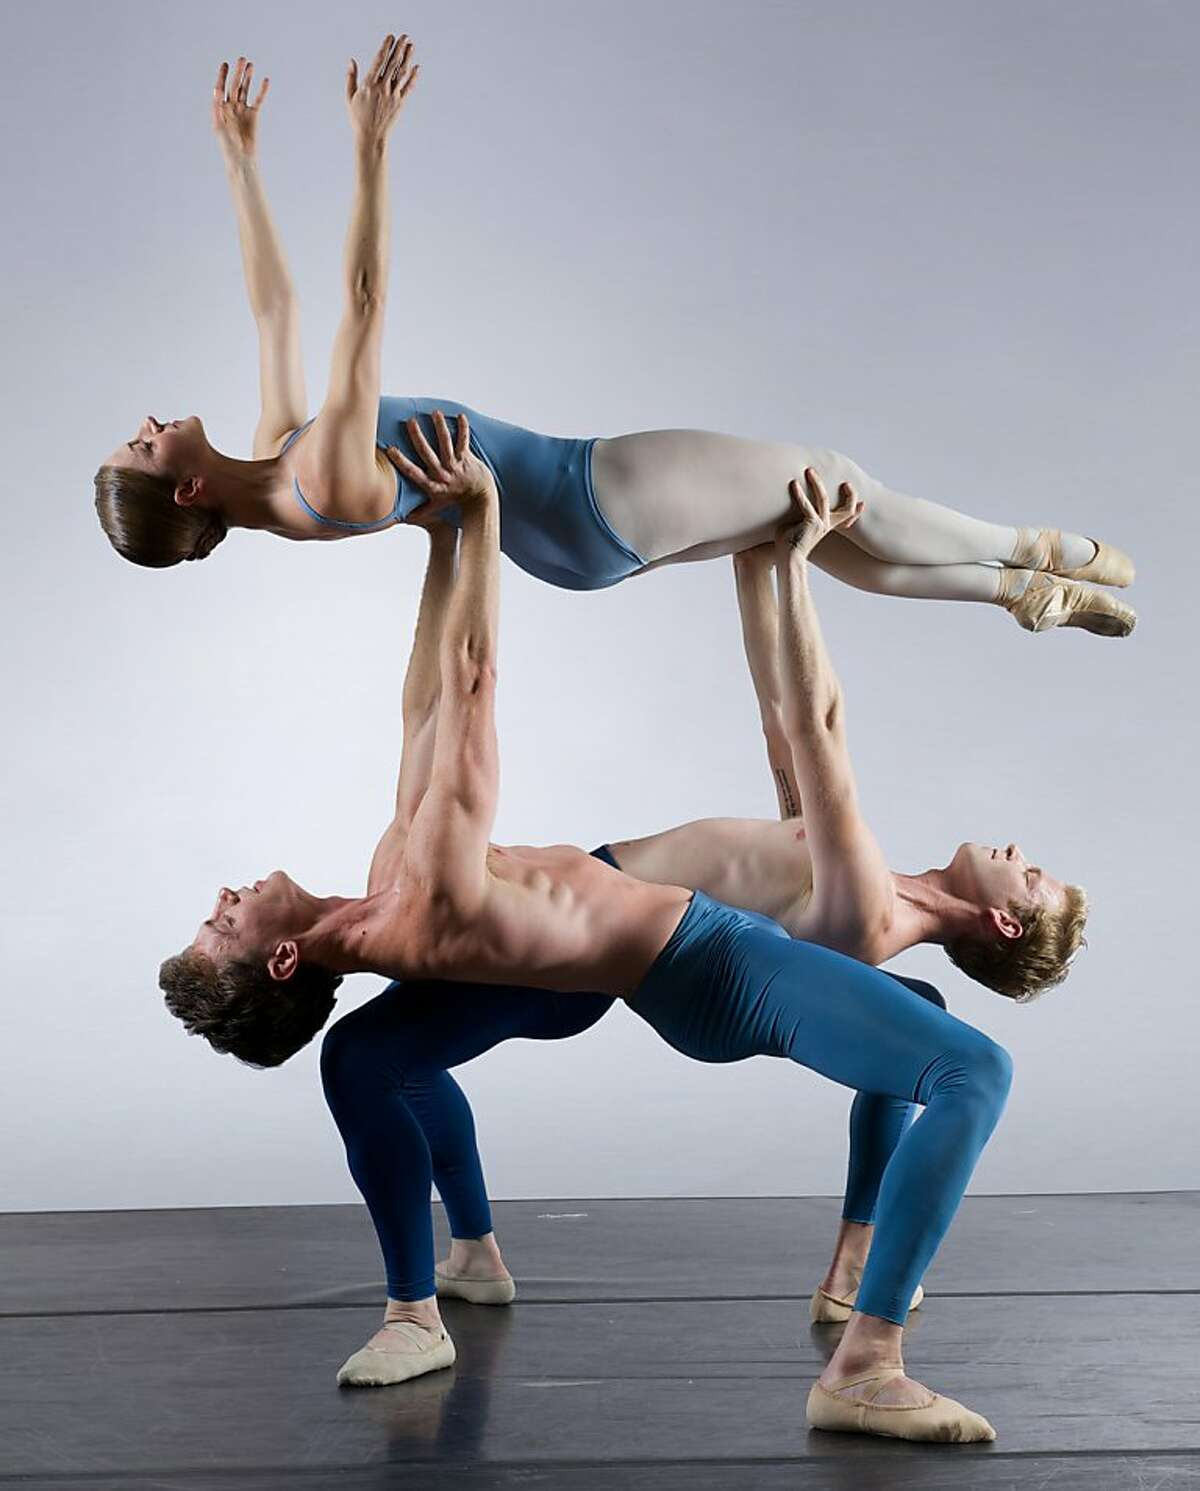 Smuin_Kylian3_KeithSutter: Smuin Ballet dancer Jane Rehm is lifted by Jonathan Dummar (left) and Joshua Reynolds (right) in Jir Kyli n s Return to a Strange Land, part of Smuin's XXtremes Fall Program playing October 4-12 at San Francisco's Palace of Fine Arts. Photo credit